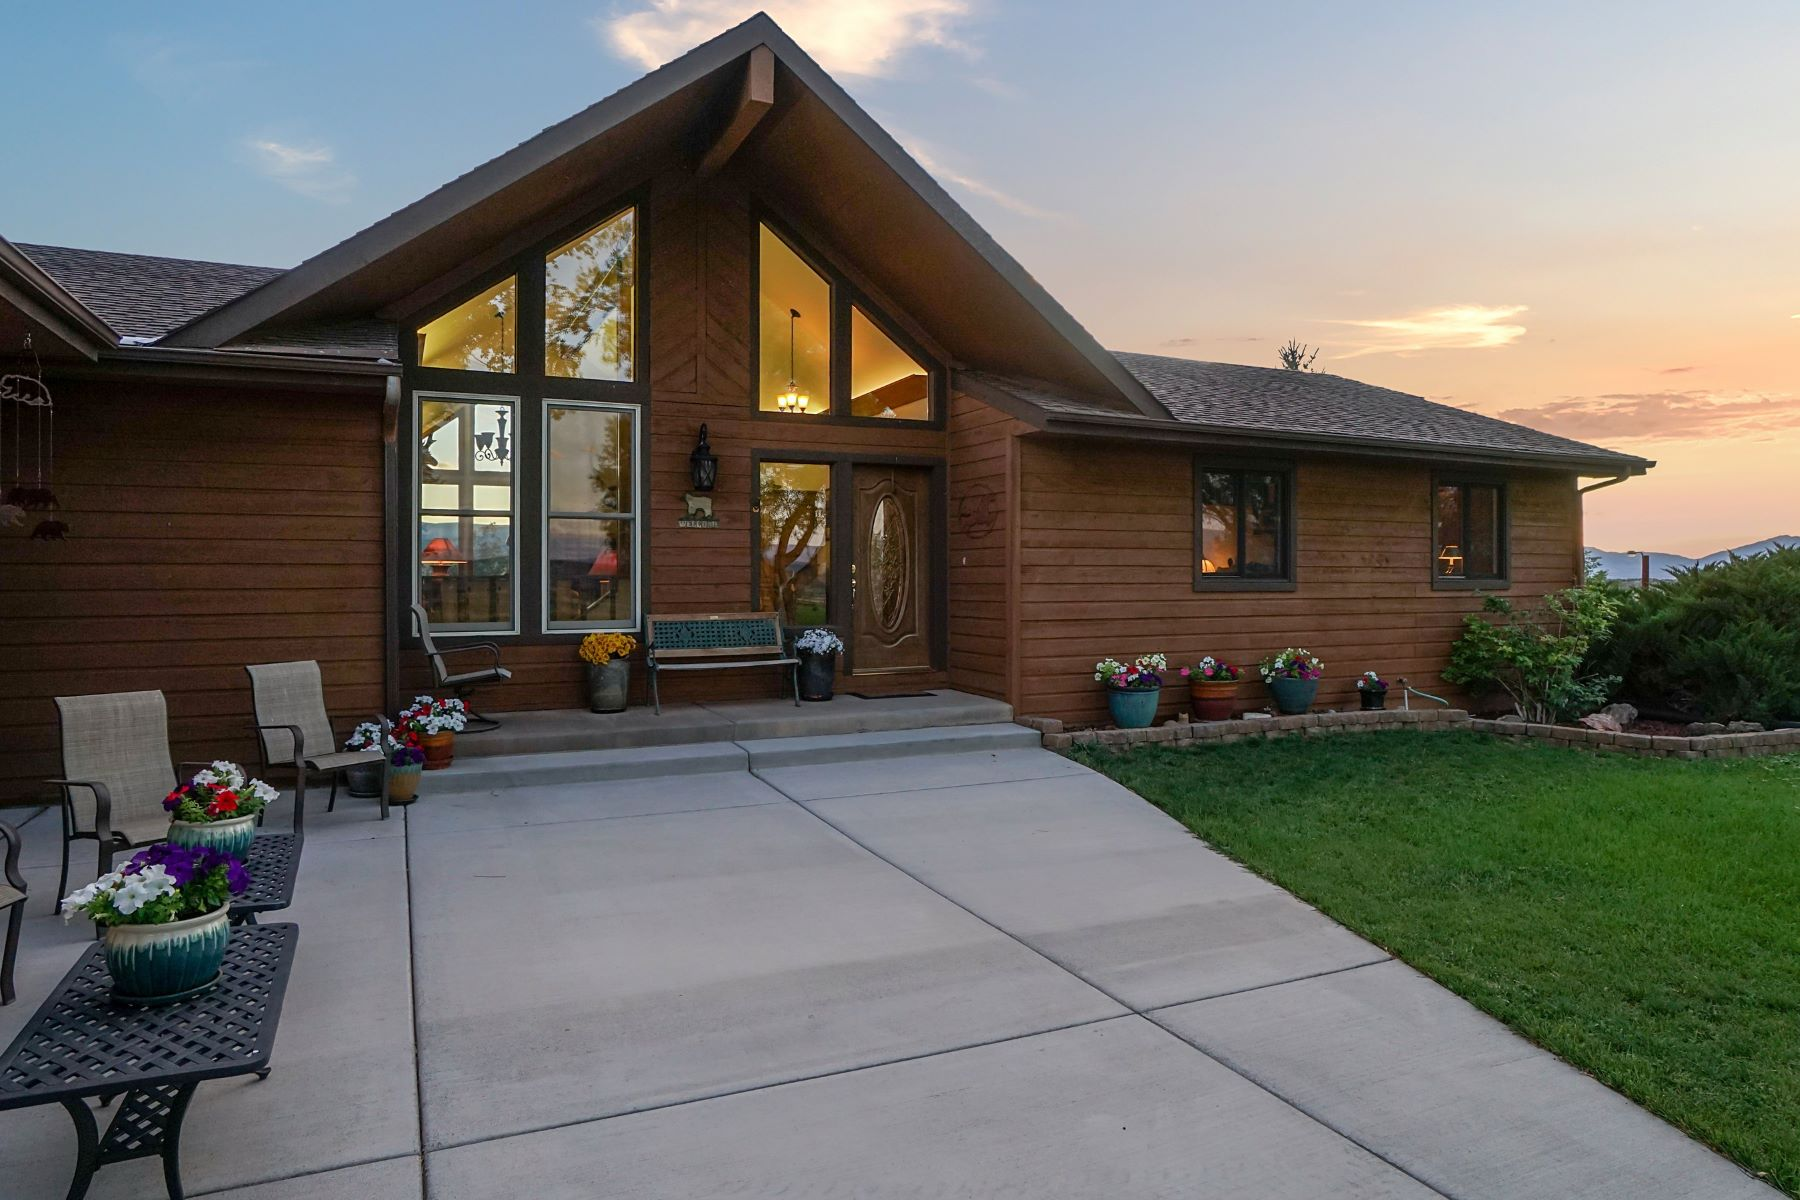 Single Family Homes for Active at M&B, SILT 5181 Co Rd 331 Silt, Colorado 81652 United States